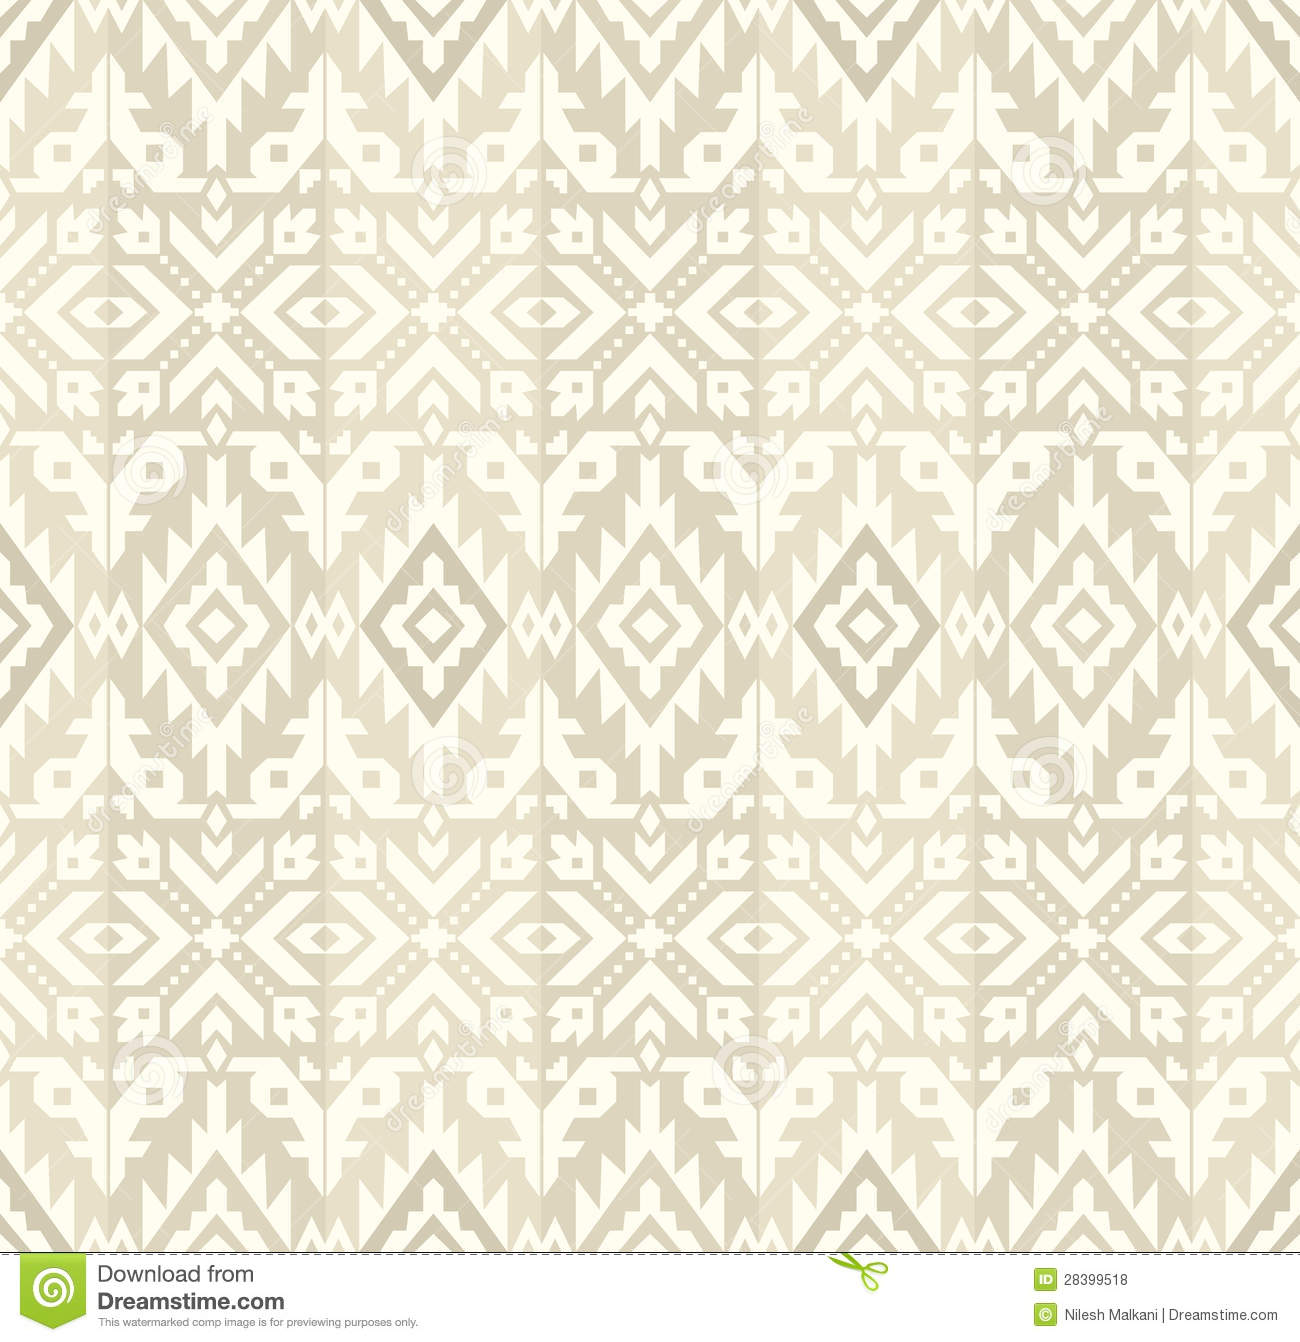 Bed sheet pattern texture - Seamless Background For Bed Sheet